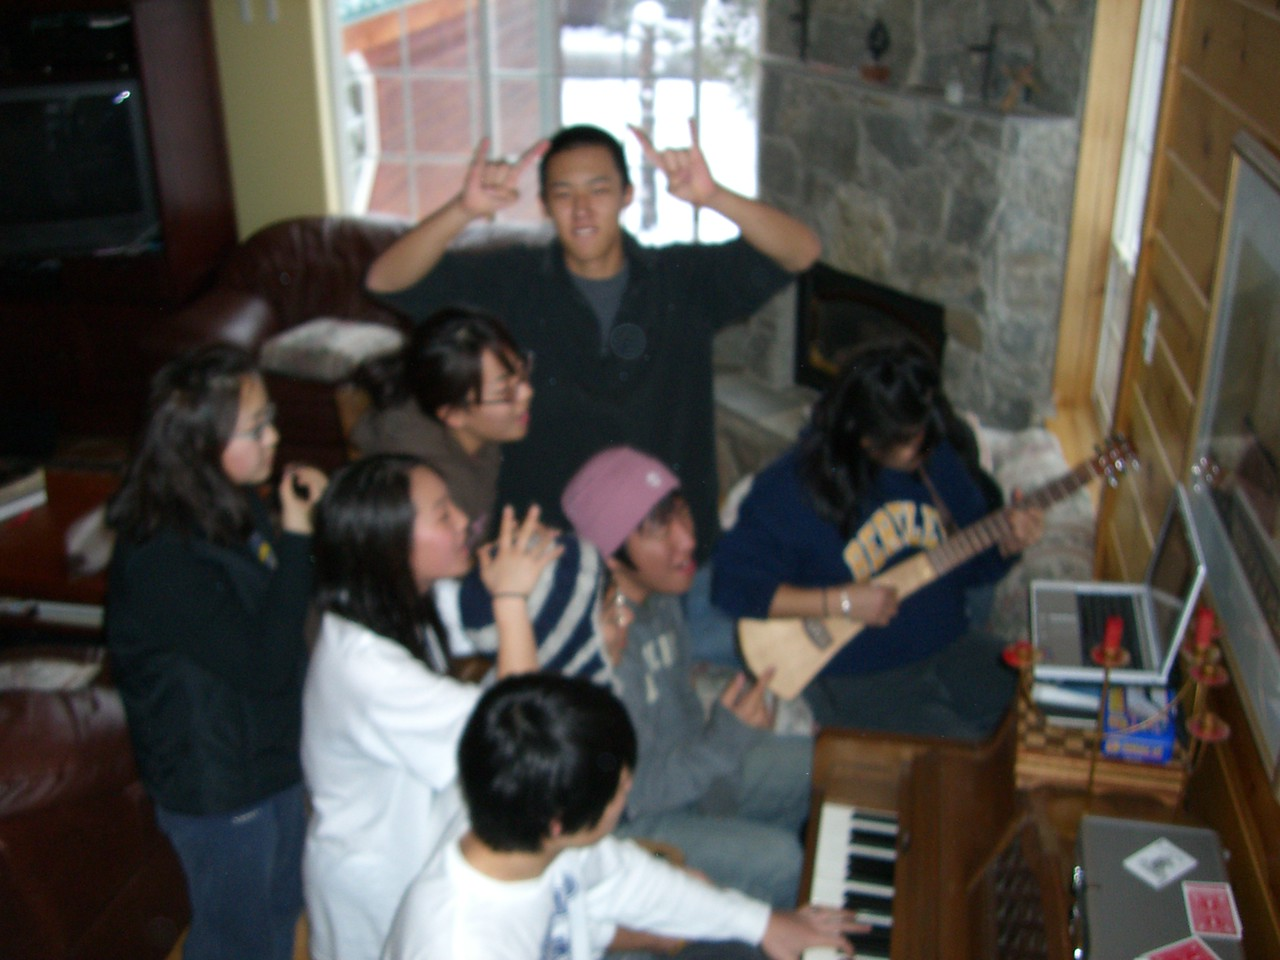 2005 12 27 Tue - Youth Group singing praise around the piano in the cabin 1 - blurry